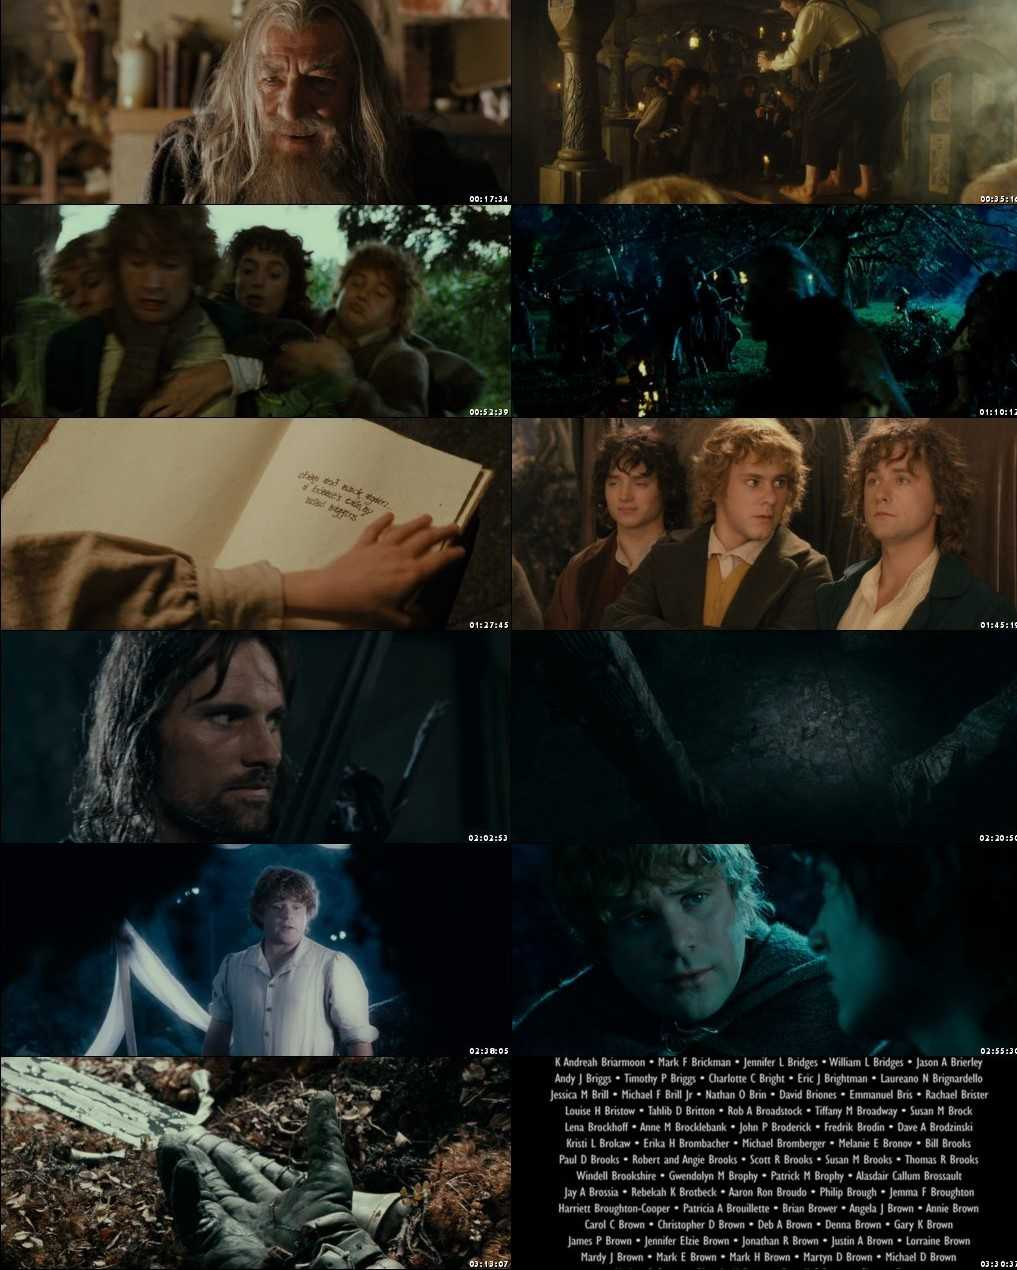 The Lord of the Rings: The Return of the King 2003 Screenshot 1080p